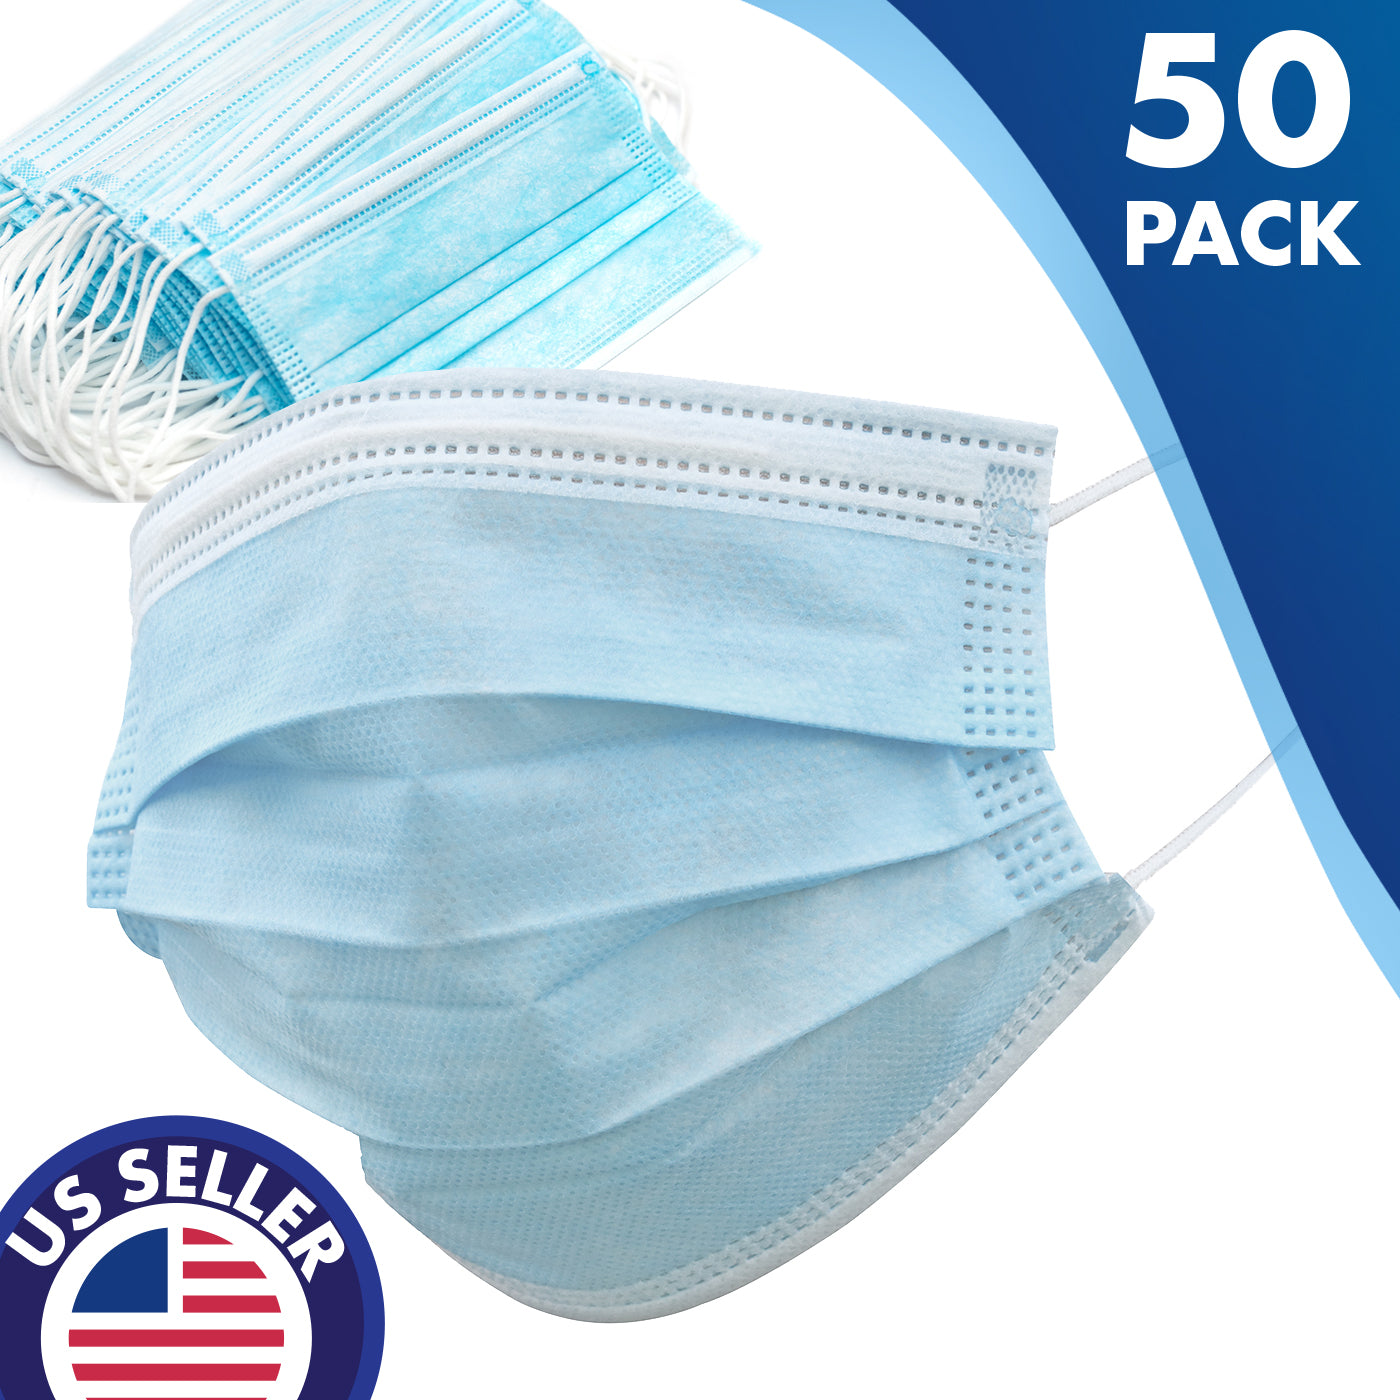 Disposable Ultimate Protect Face Mask Virus Flu Medical Face Mask 50 PK